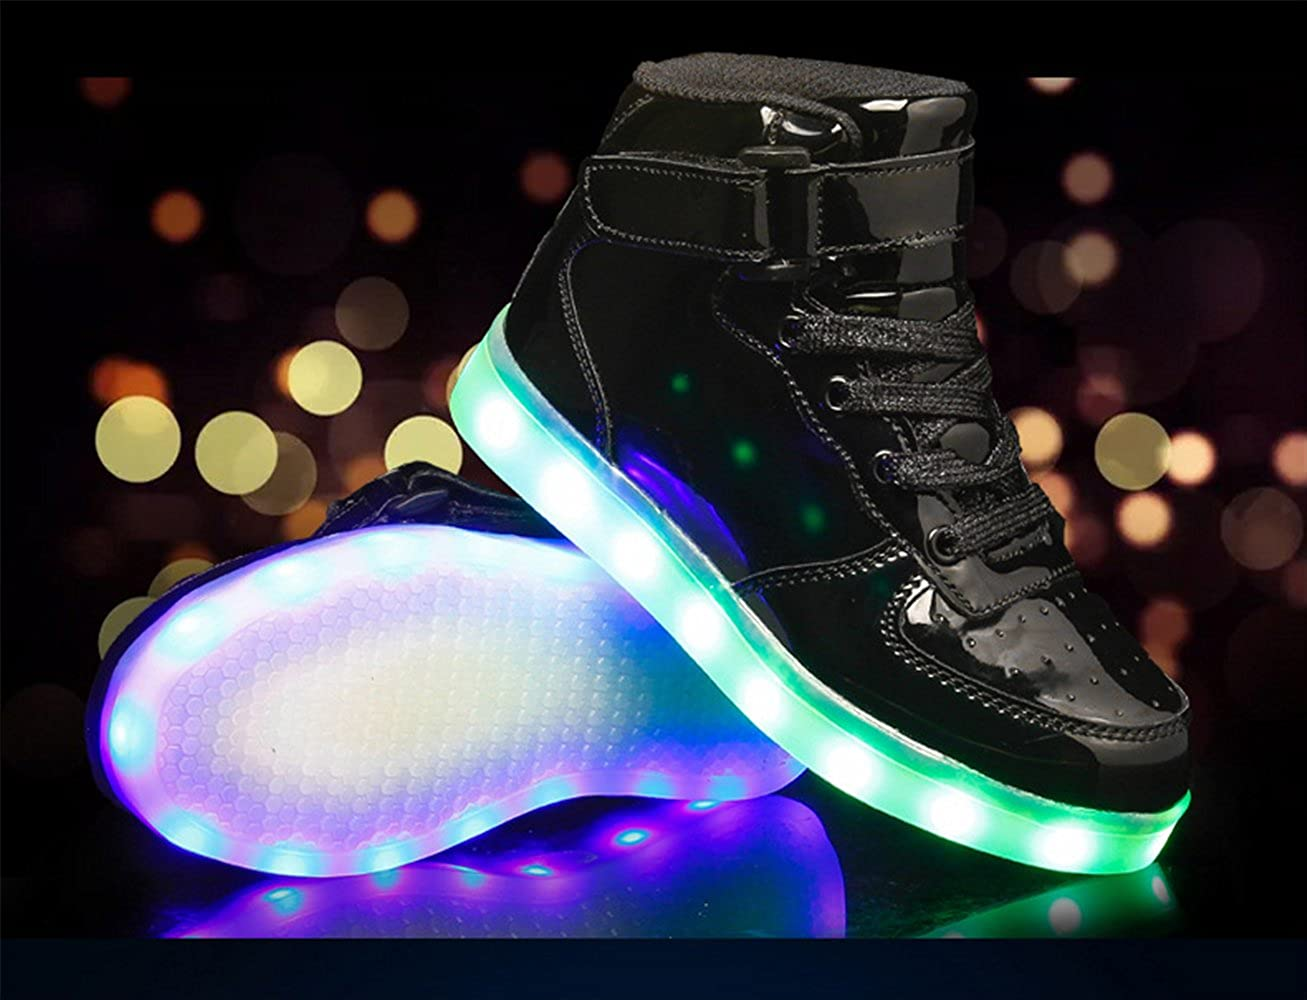 A2kmsmss5a New Children High Top Dance LED Light Up Shoes USB Sneakers for Kids Boys Girls